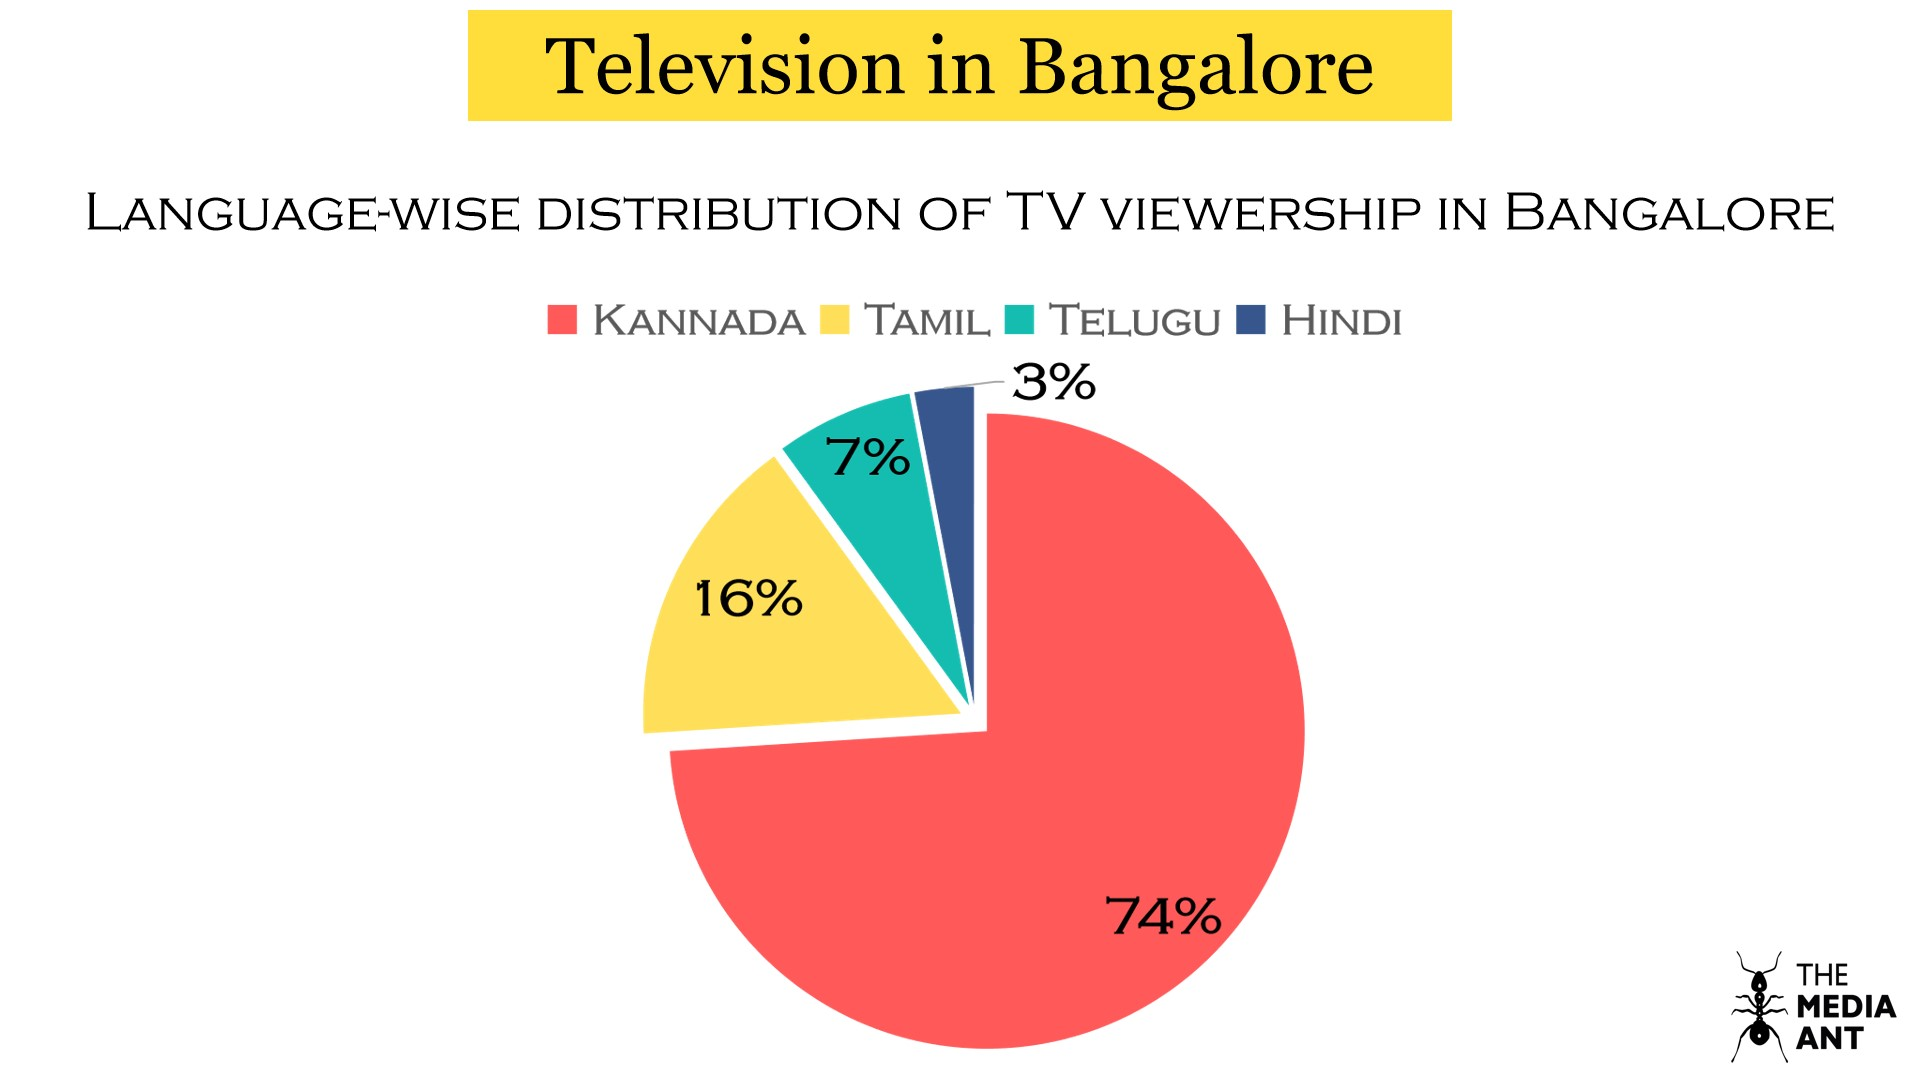 Language wise distribution of TV viewership in Bangalore